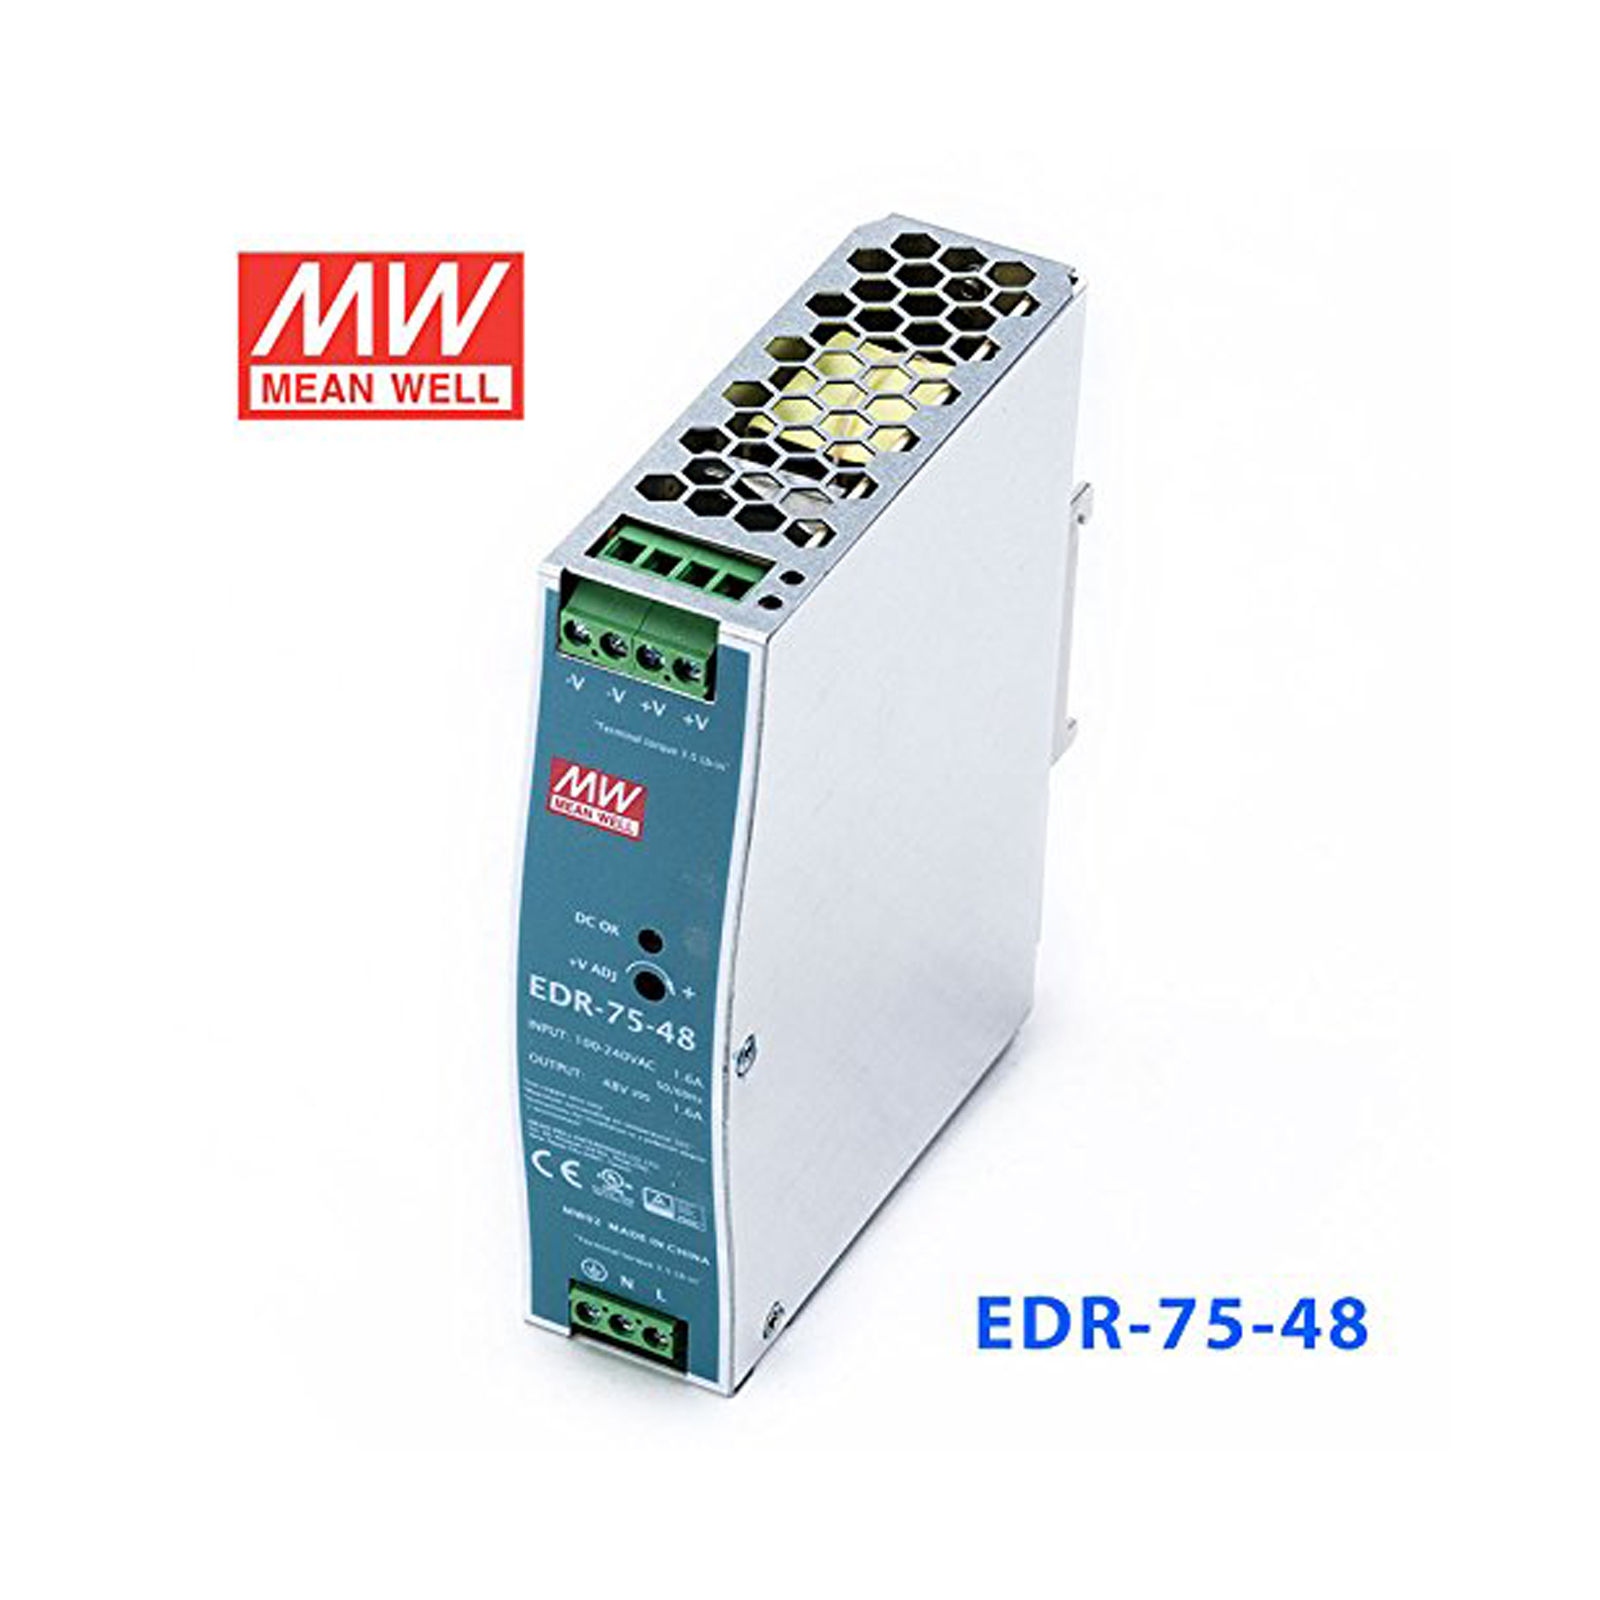 MEAN WELL 75W/48V 1.6A Industrial DIN RAIL Power Supply EDR-75-48